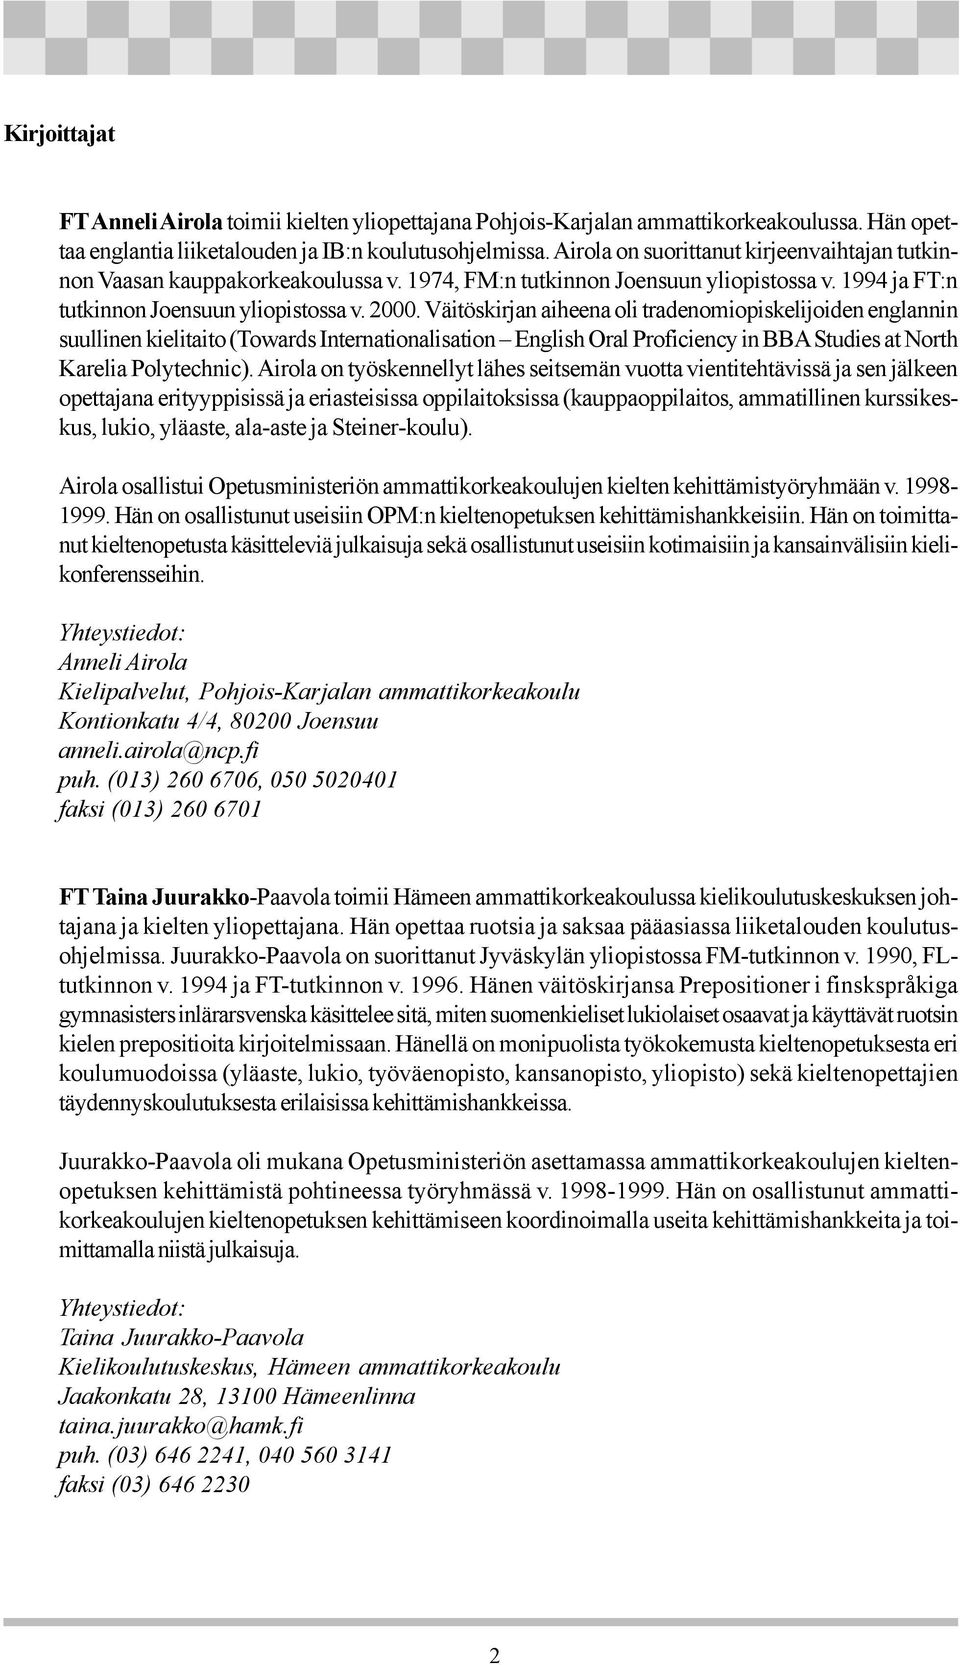 Väitöskirjan aiheena oli tradenomiopiskelijoiden englannin suullinen kielitaito (Towards Internationalisation English Oral Proficiency in BBA Studies at North Karelia Polytechnic).